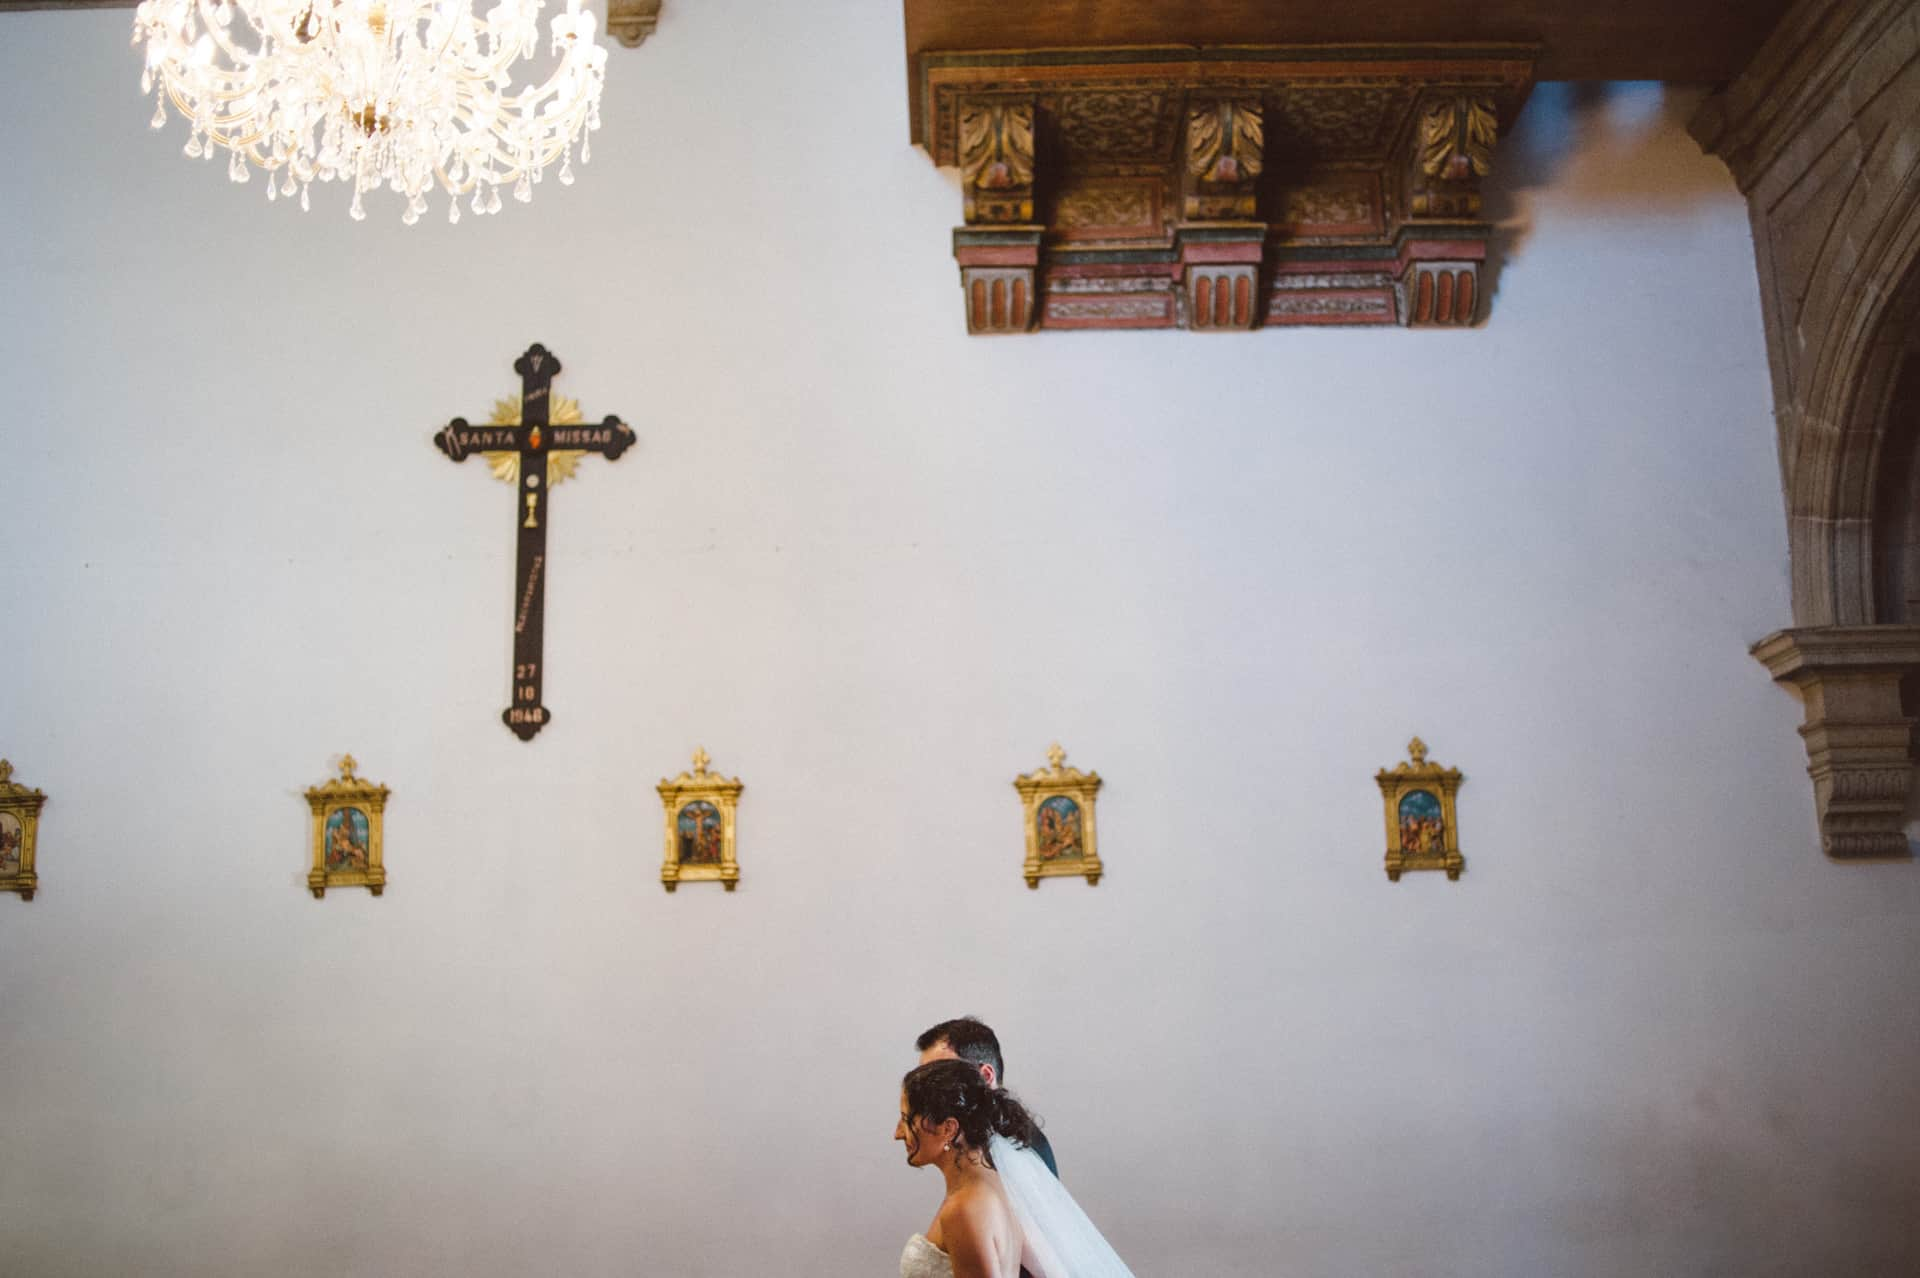 Best wedding images of the year (162 of 316)